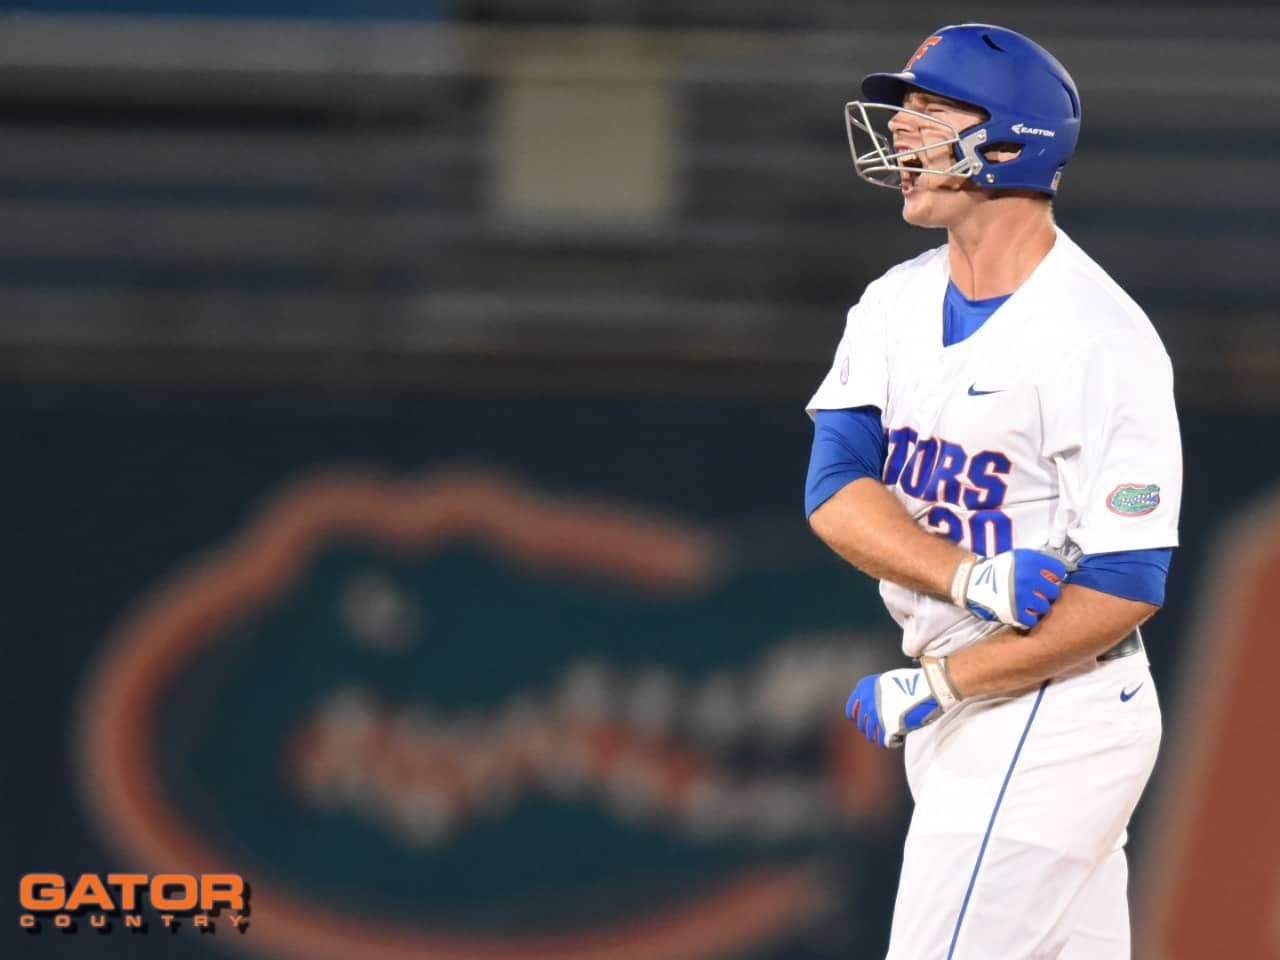 Thrive and advance: Florida Gators move on with 11-2 win